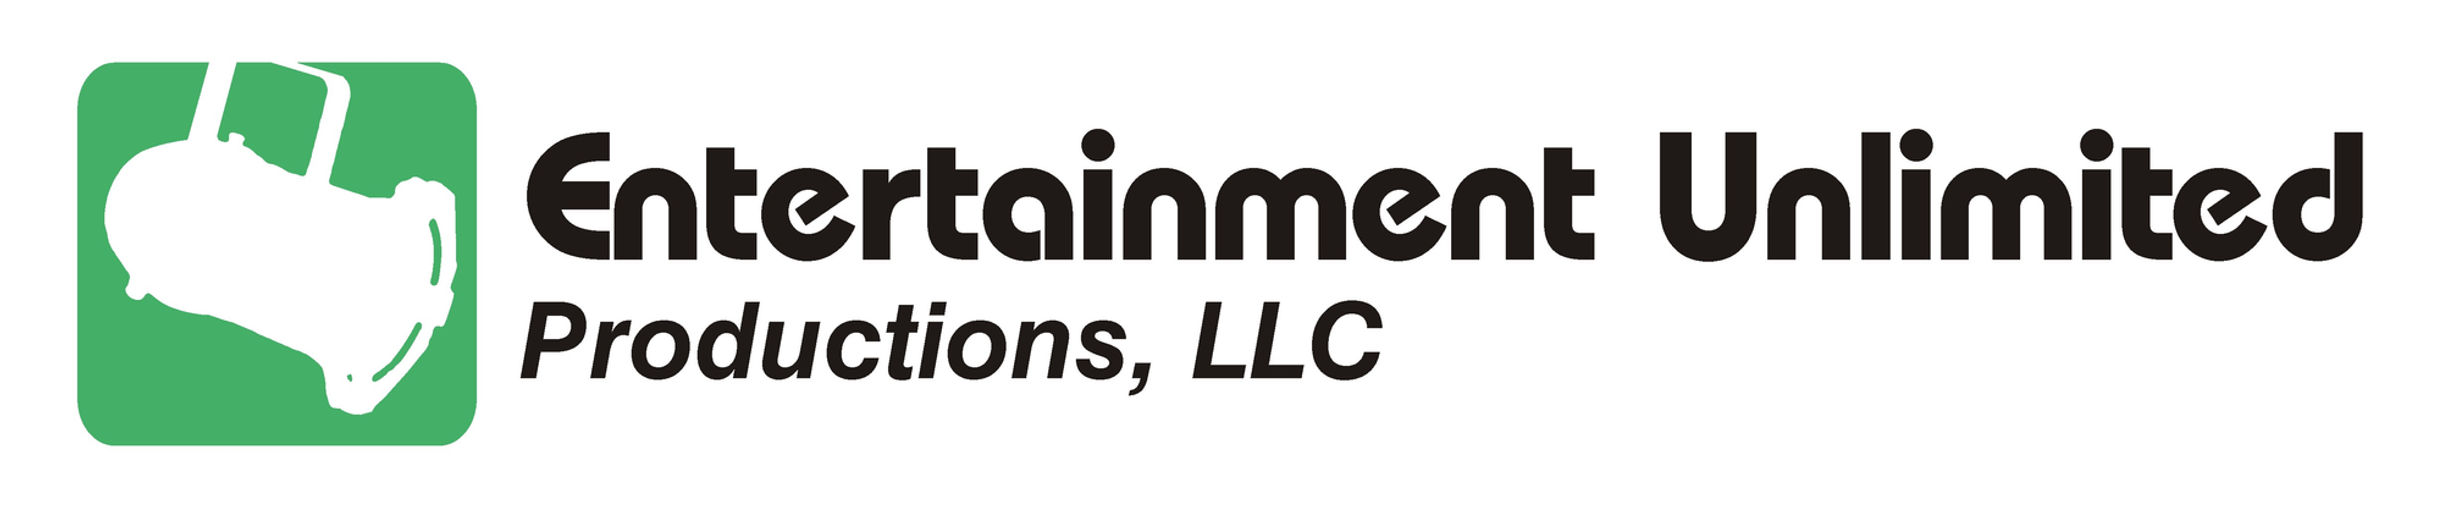 Entertainment unlimited pa system lighting plattsburgh for Home designs unlimited llc